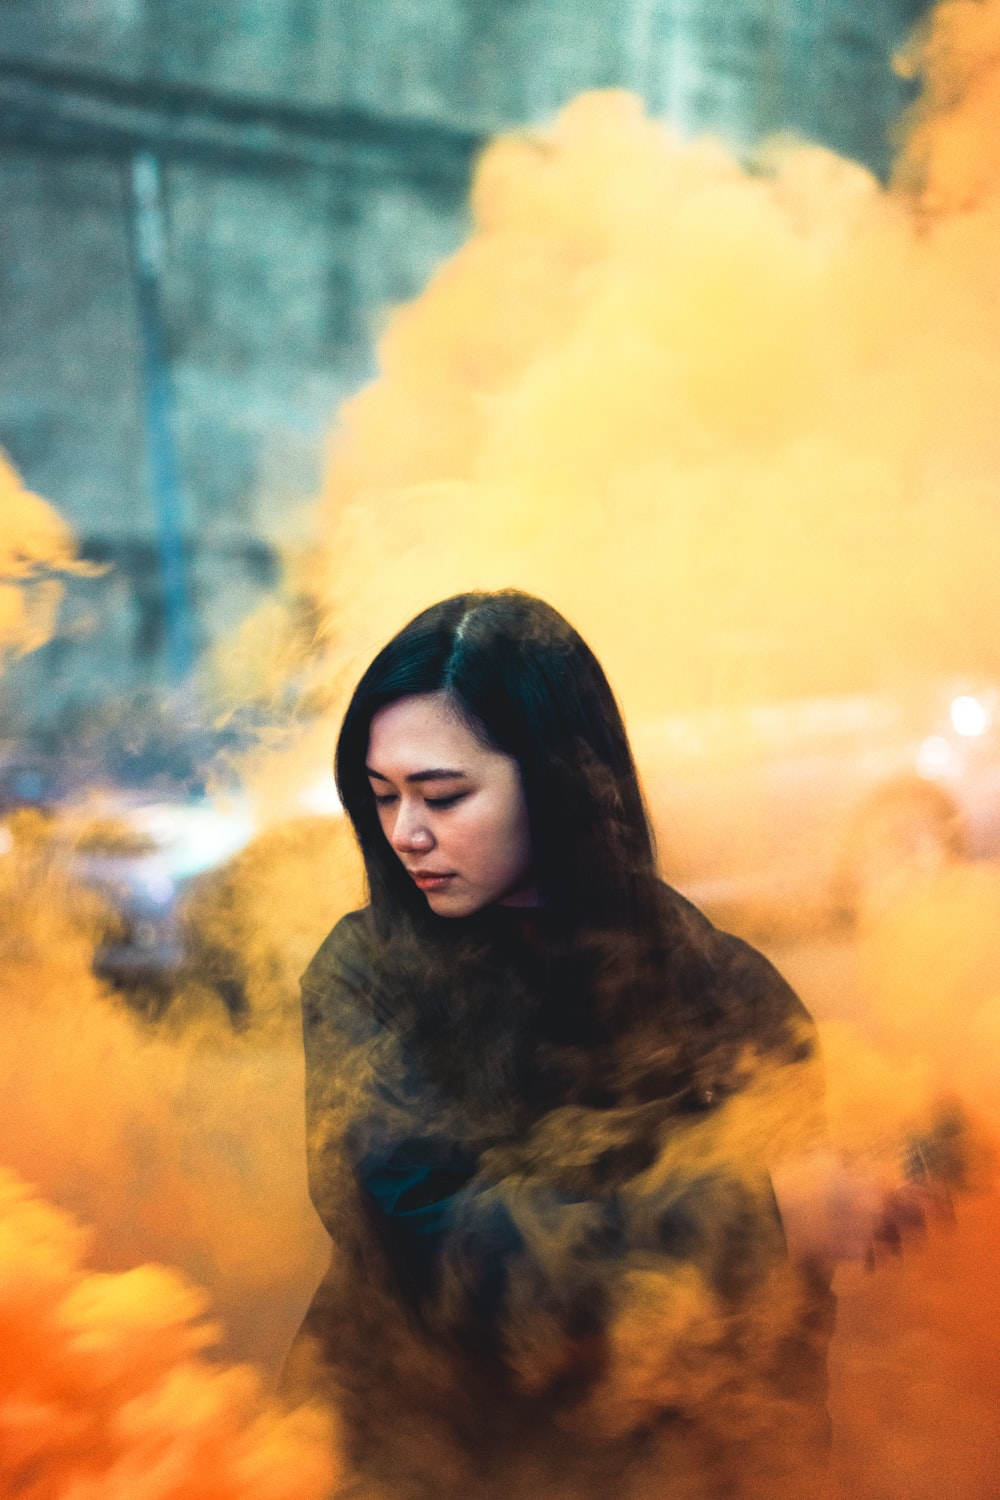 woman surrounded by orange smoke